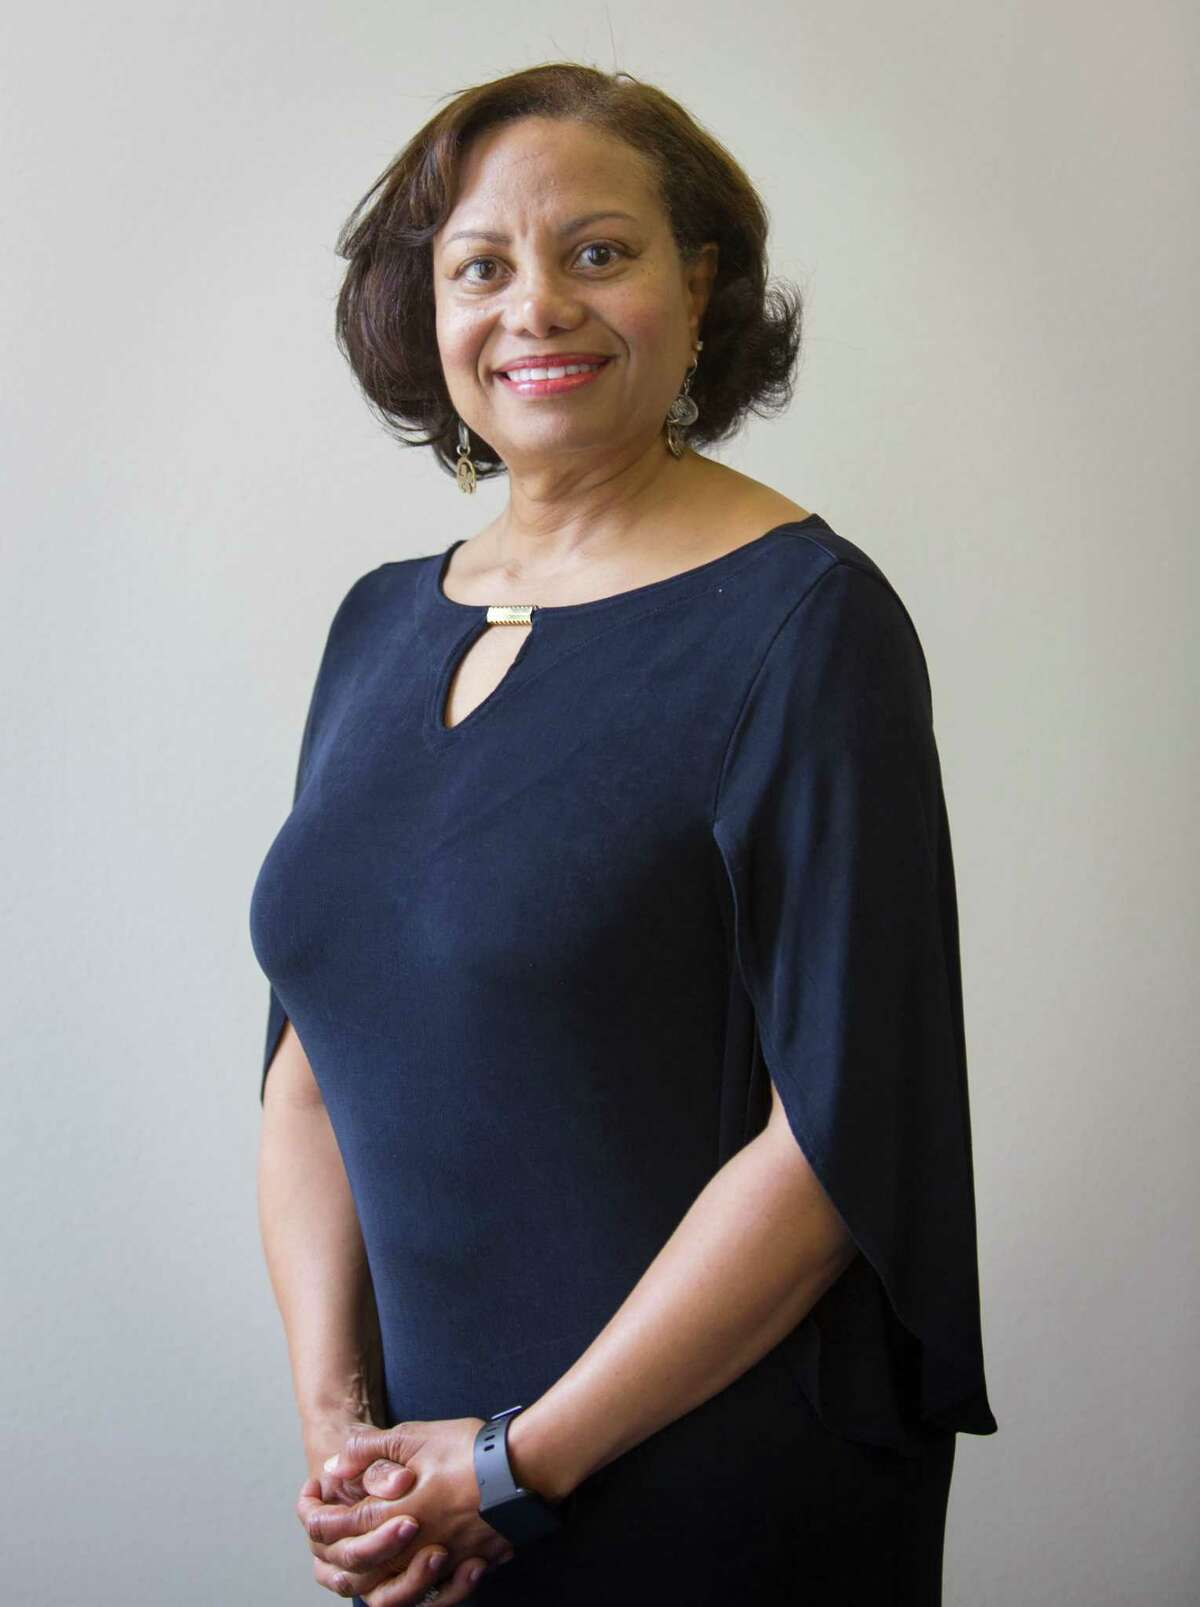 Maria Jackson (D), is a candidate for Court of Criminal Appeals Presiding Judge. We recommend her.